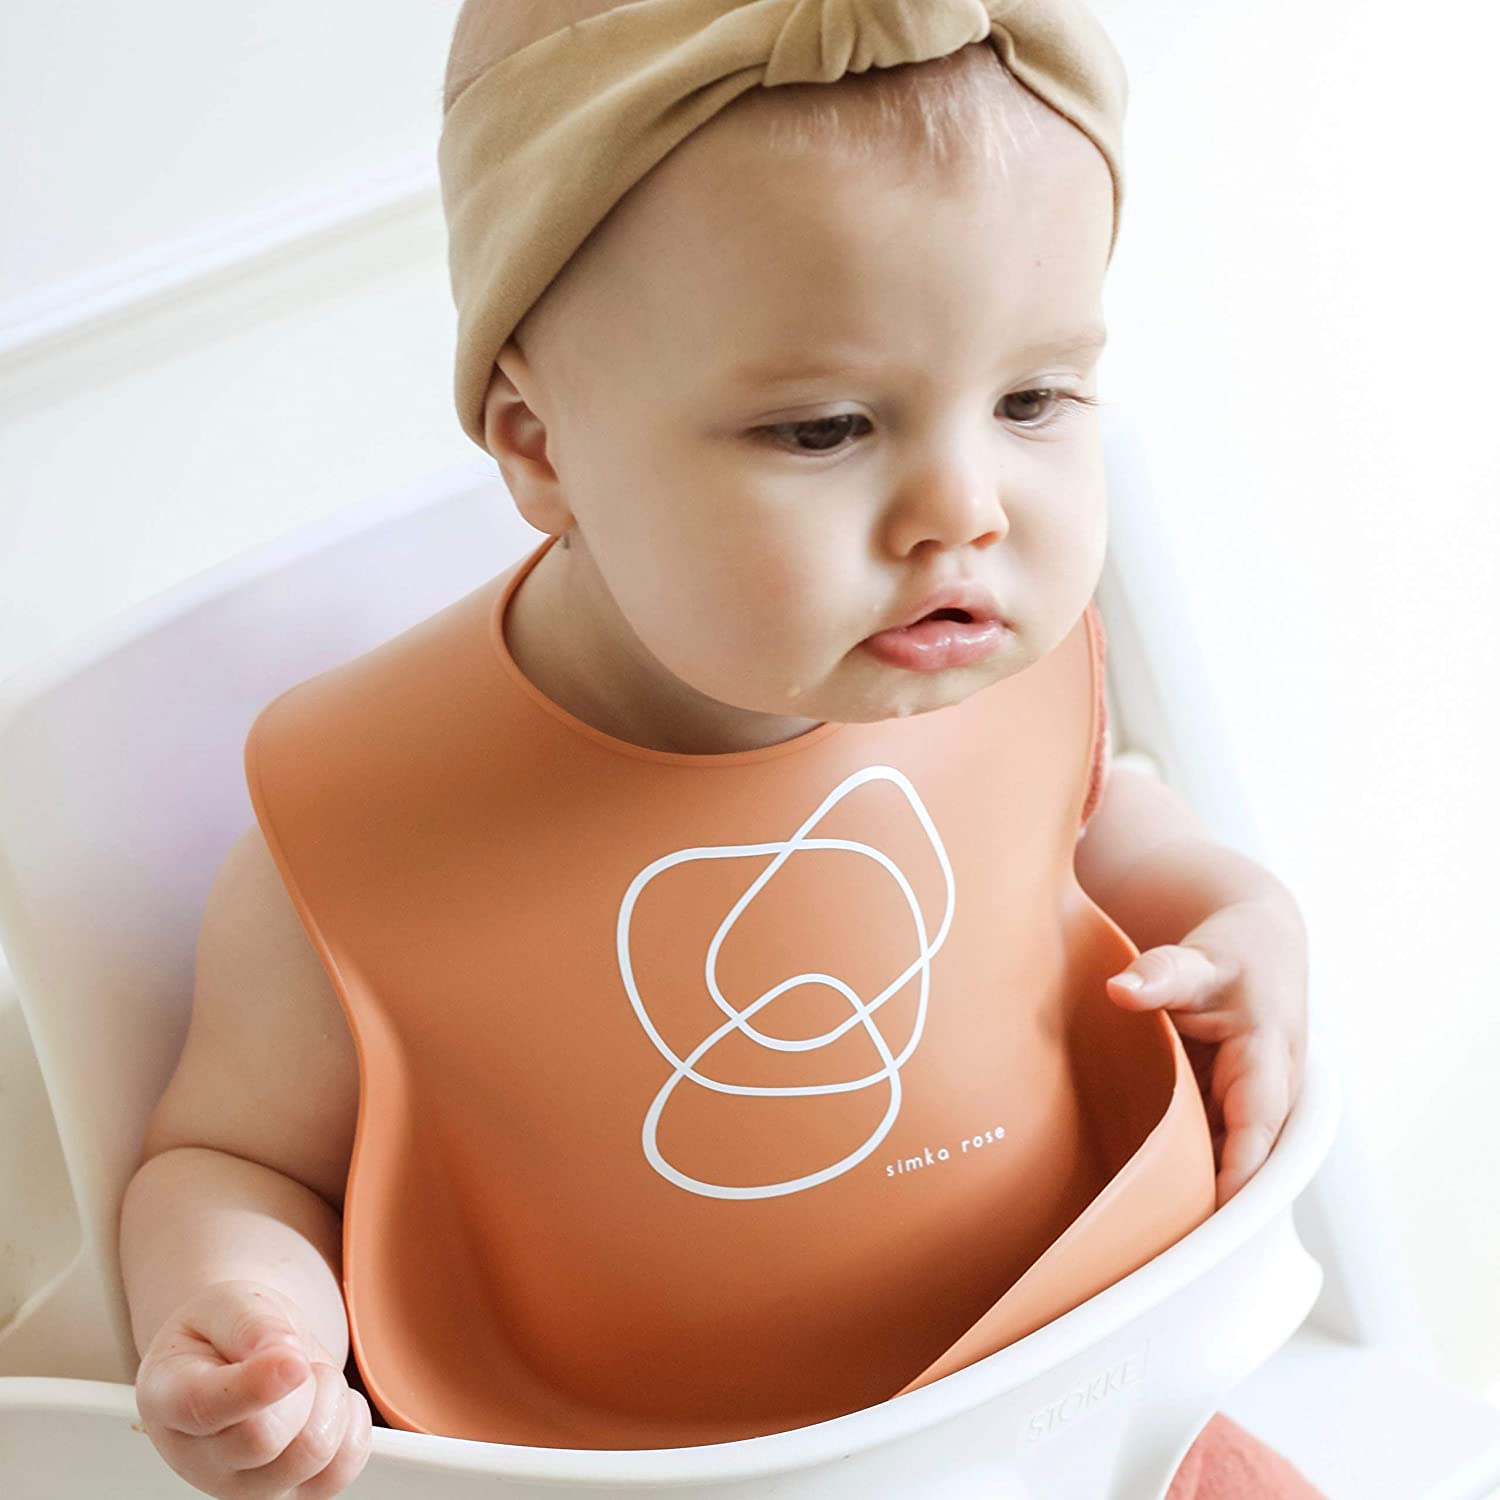 Waterproof Baby Bibs for Girls and Boys Excellent Baby Shower Gift Perfect for Babies and Toddlers Set of 2 Navy//Lime Simka Rose Silicone Bib Easy to Clean Feeding Bibs